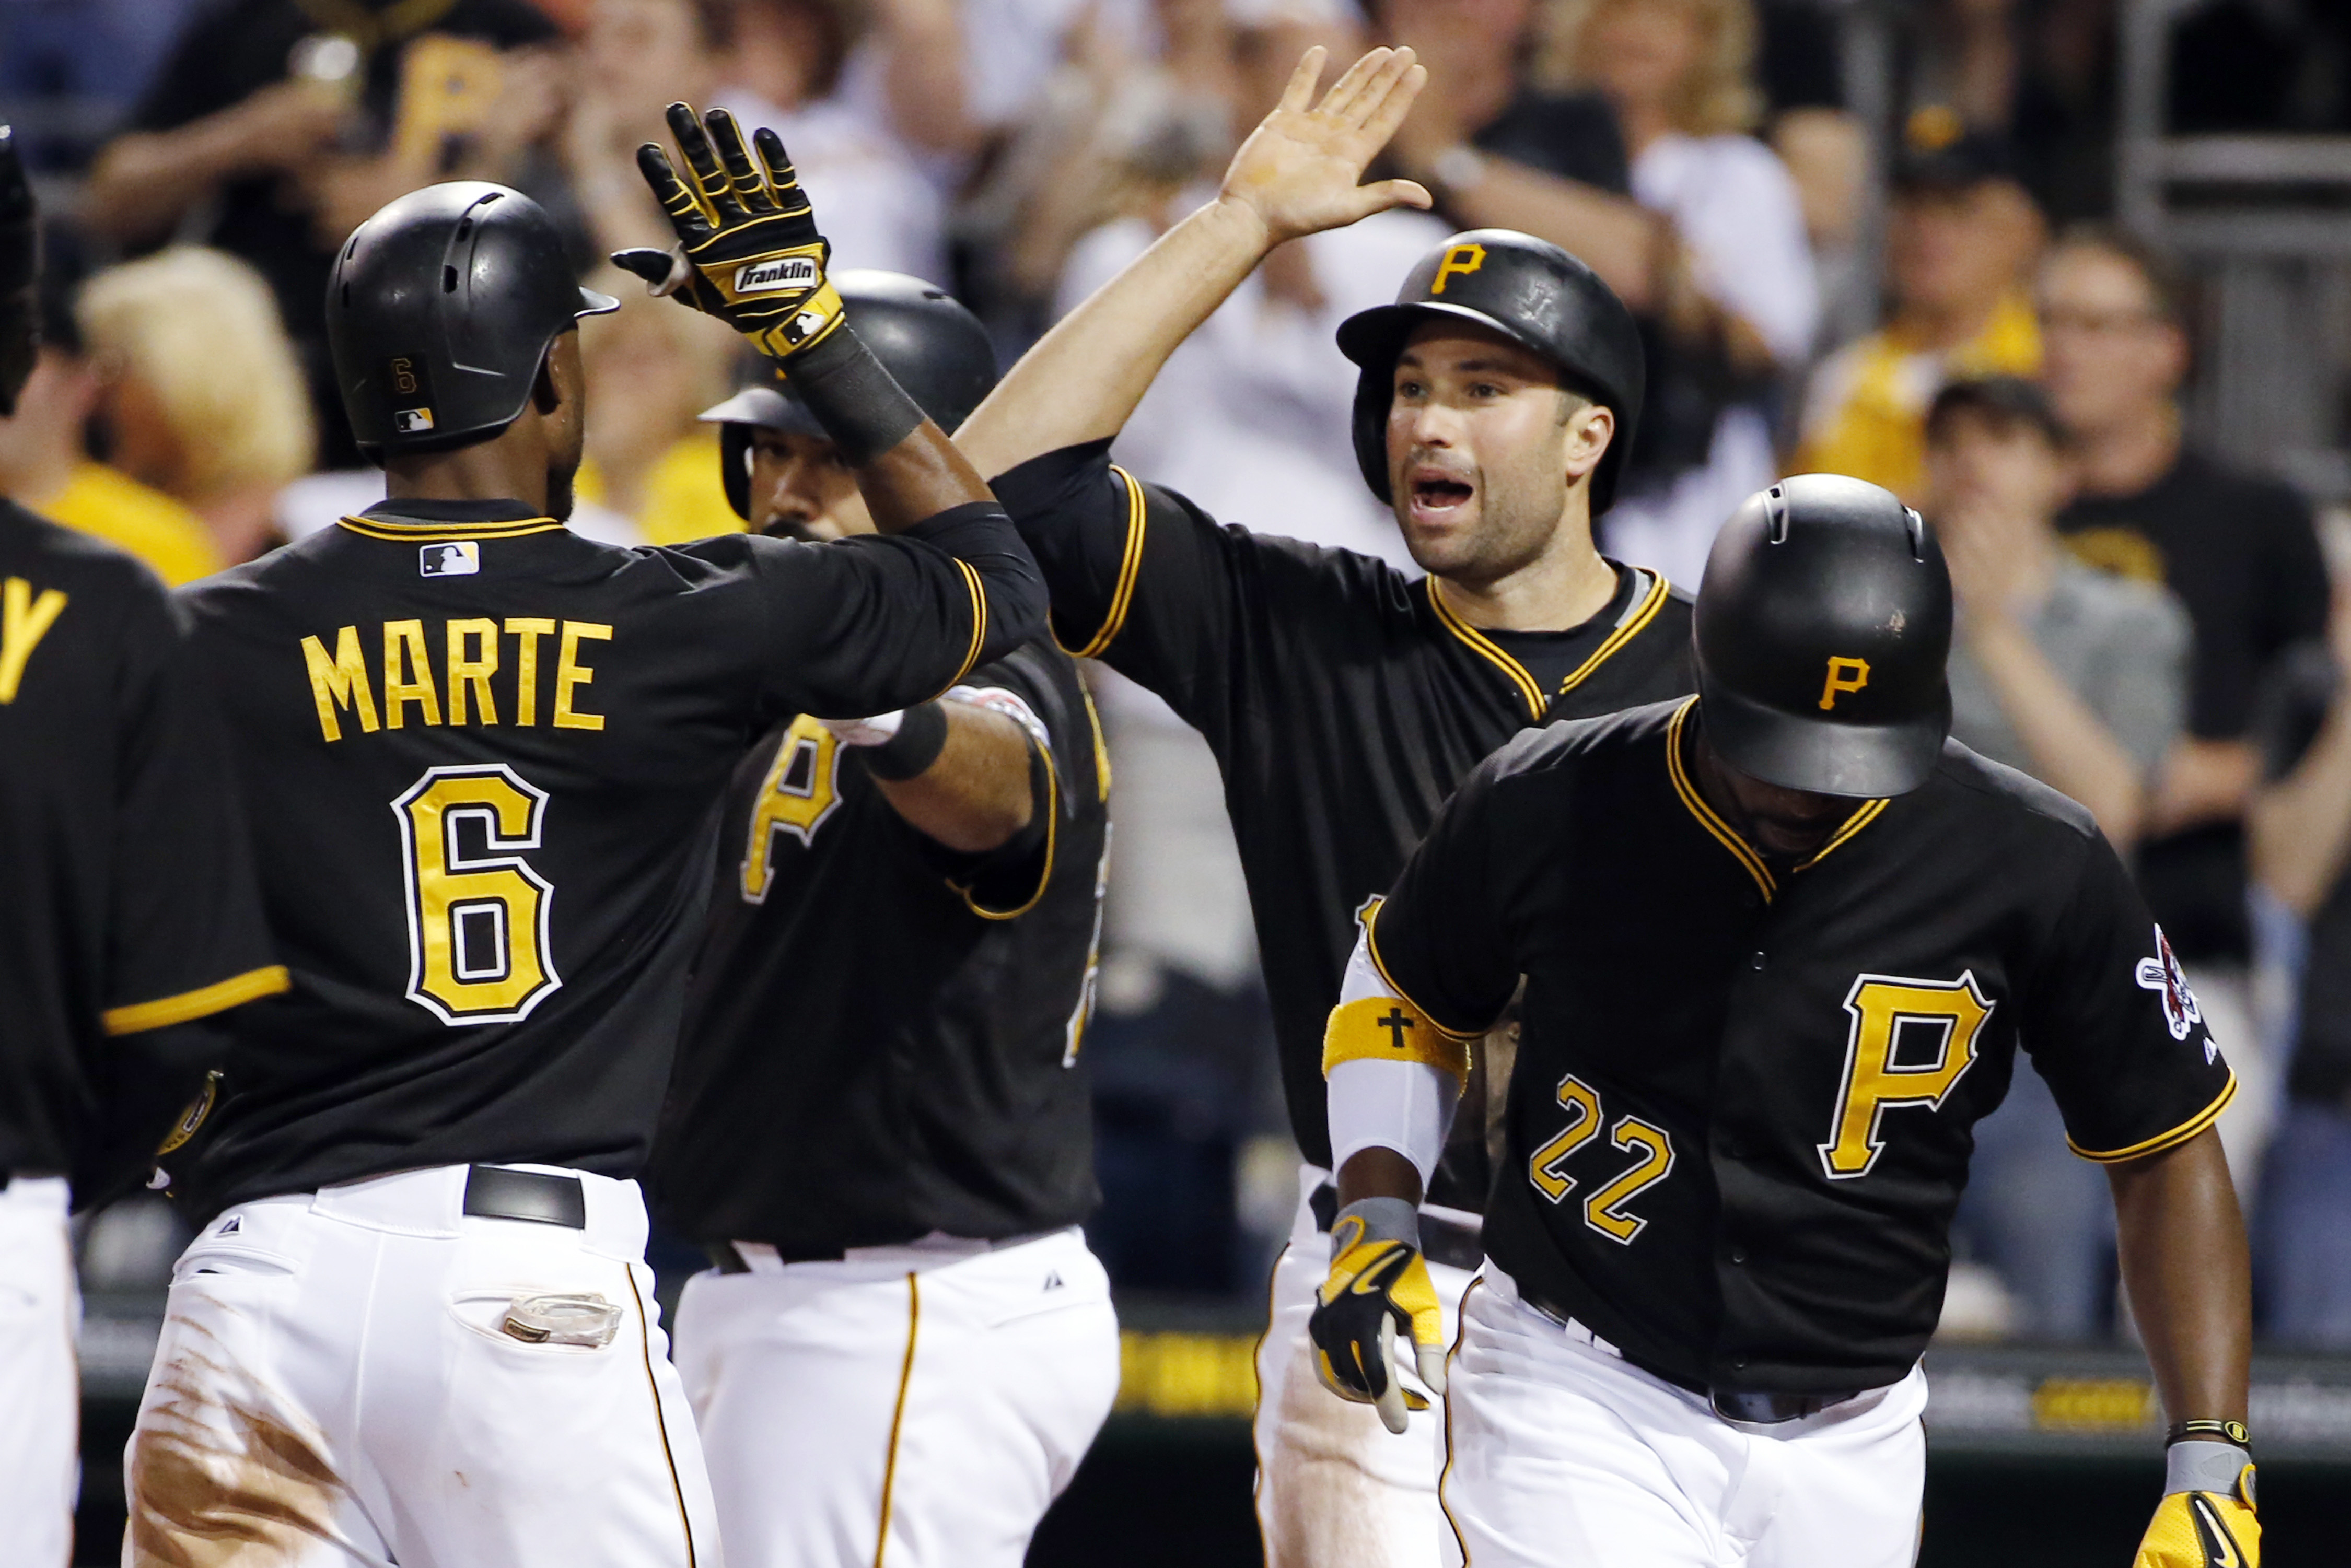 Pittsburgh Pirates' Starling Marte (6) celebrates with Neil Walker, center, as he crosses the plate after hitting a three-run home run off Milwaukee Brewers starting pitcher Kyle Lohse in the fifth inning of a baseball game in Pittsburgh, Saturday, April